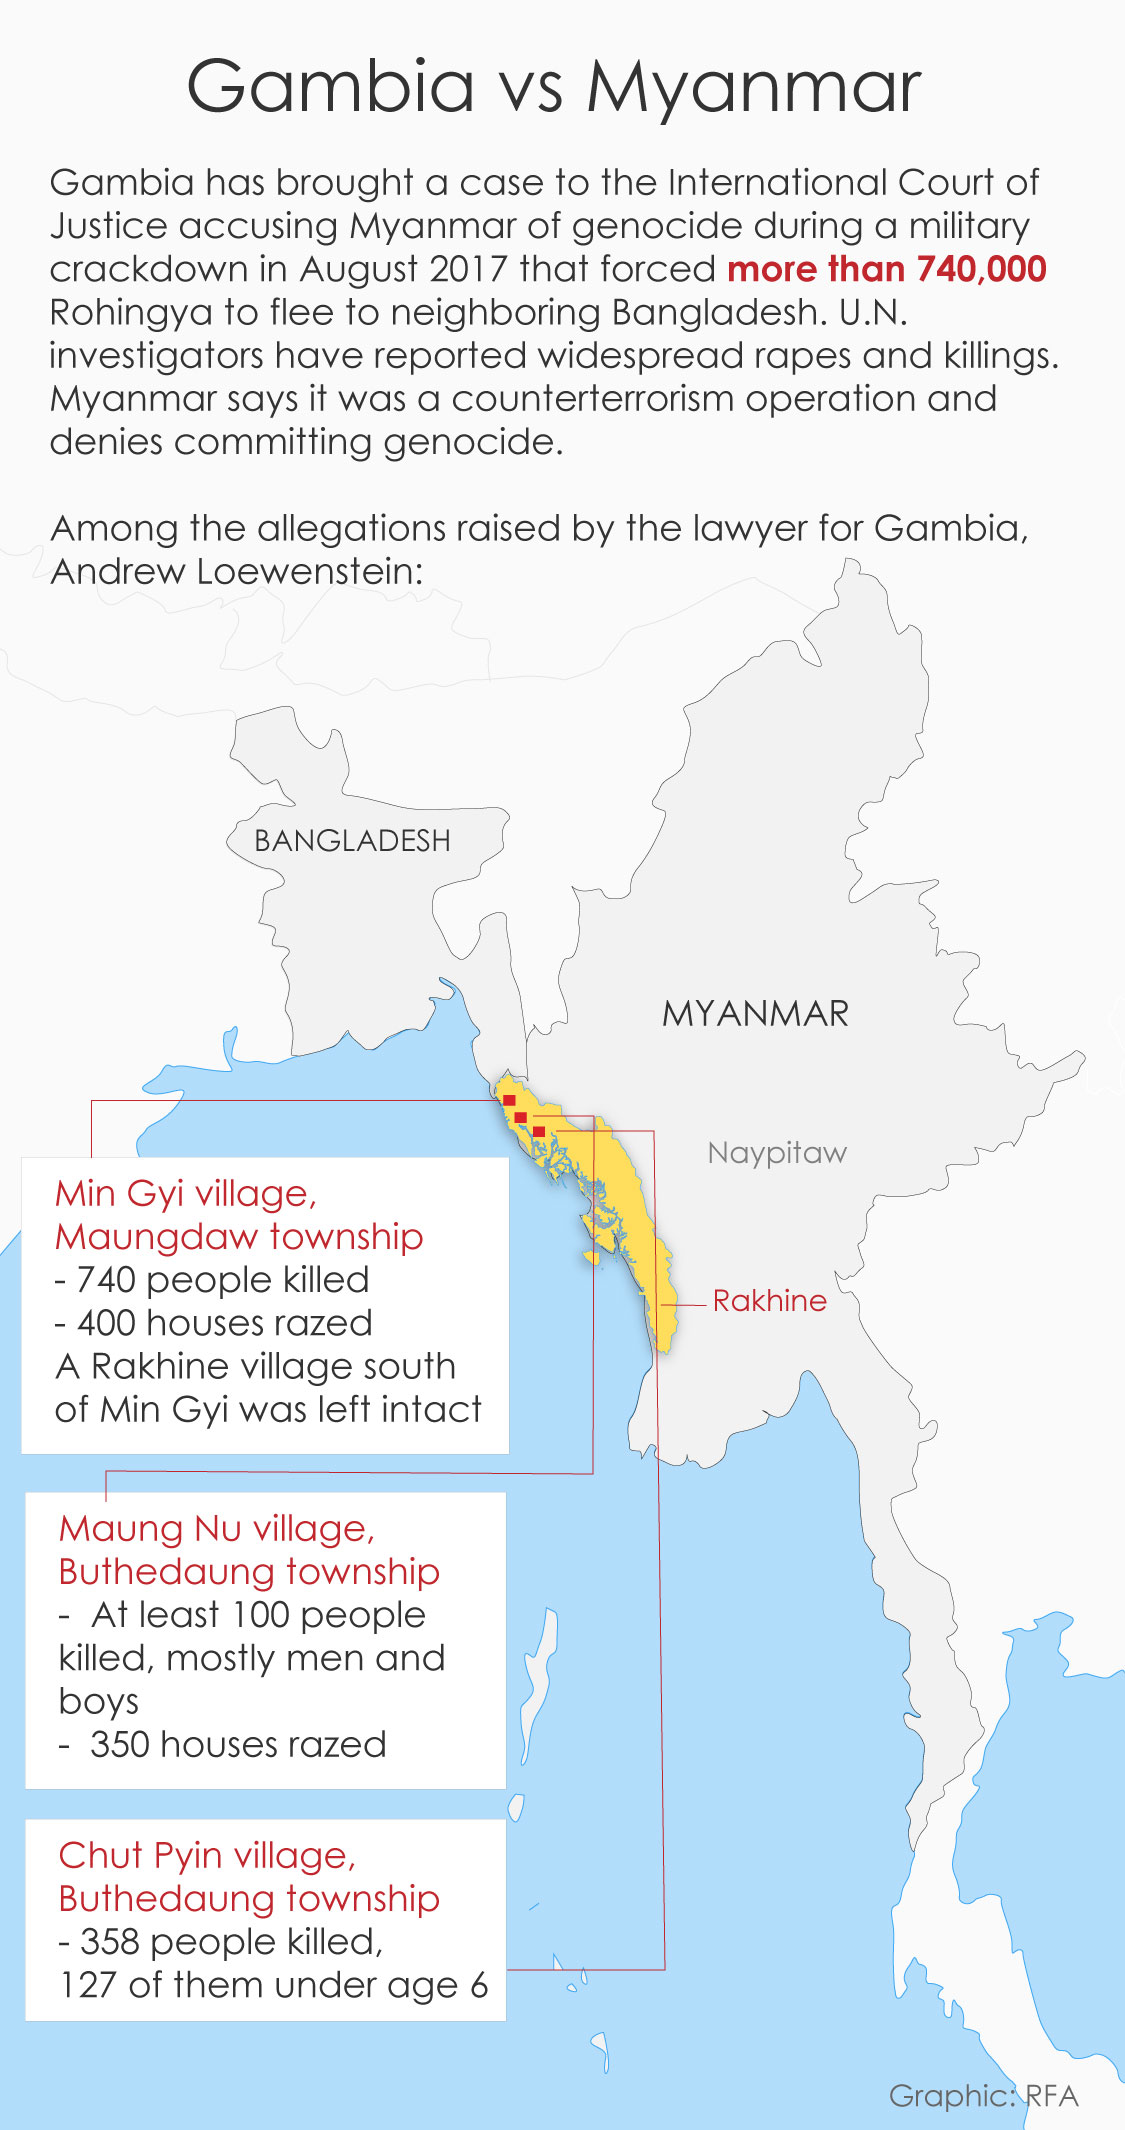 Gambia vs Myanmar case